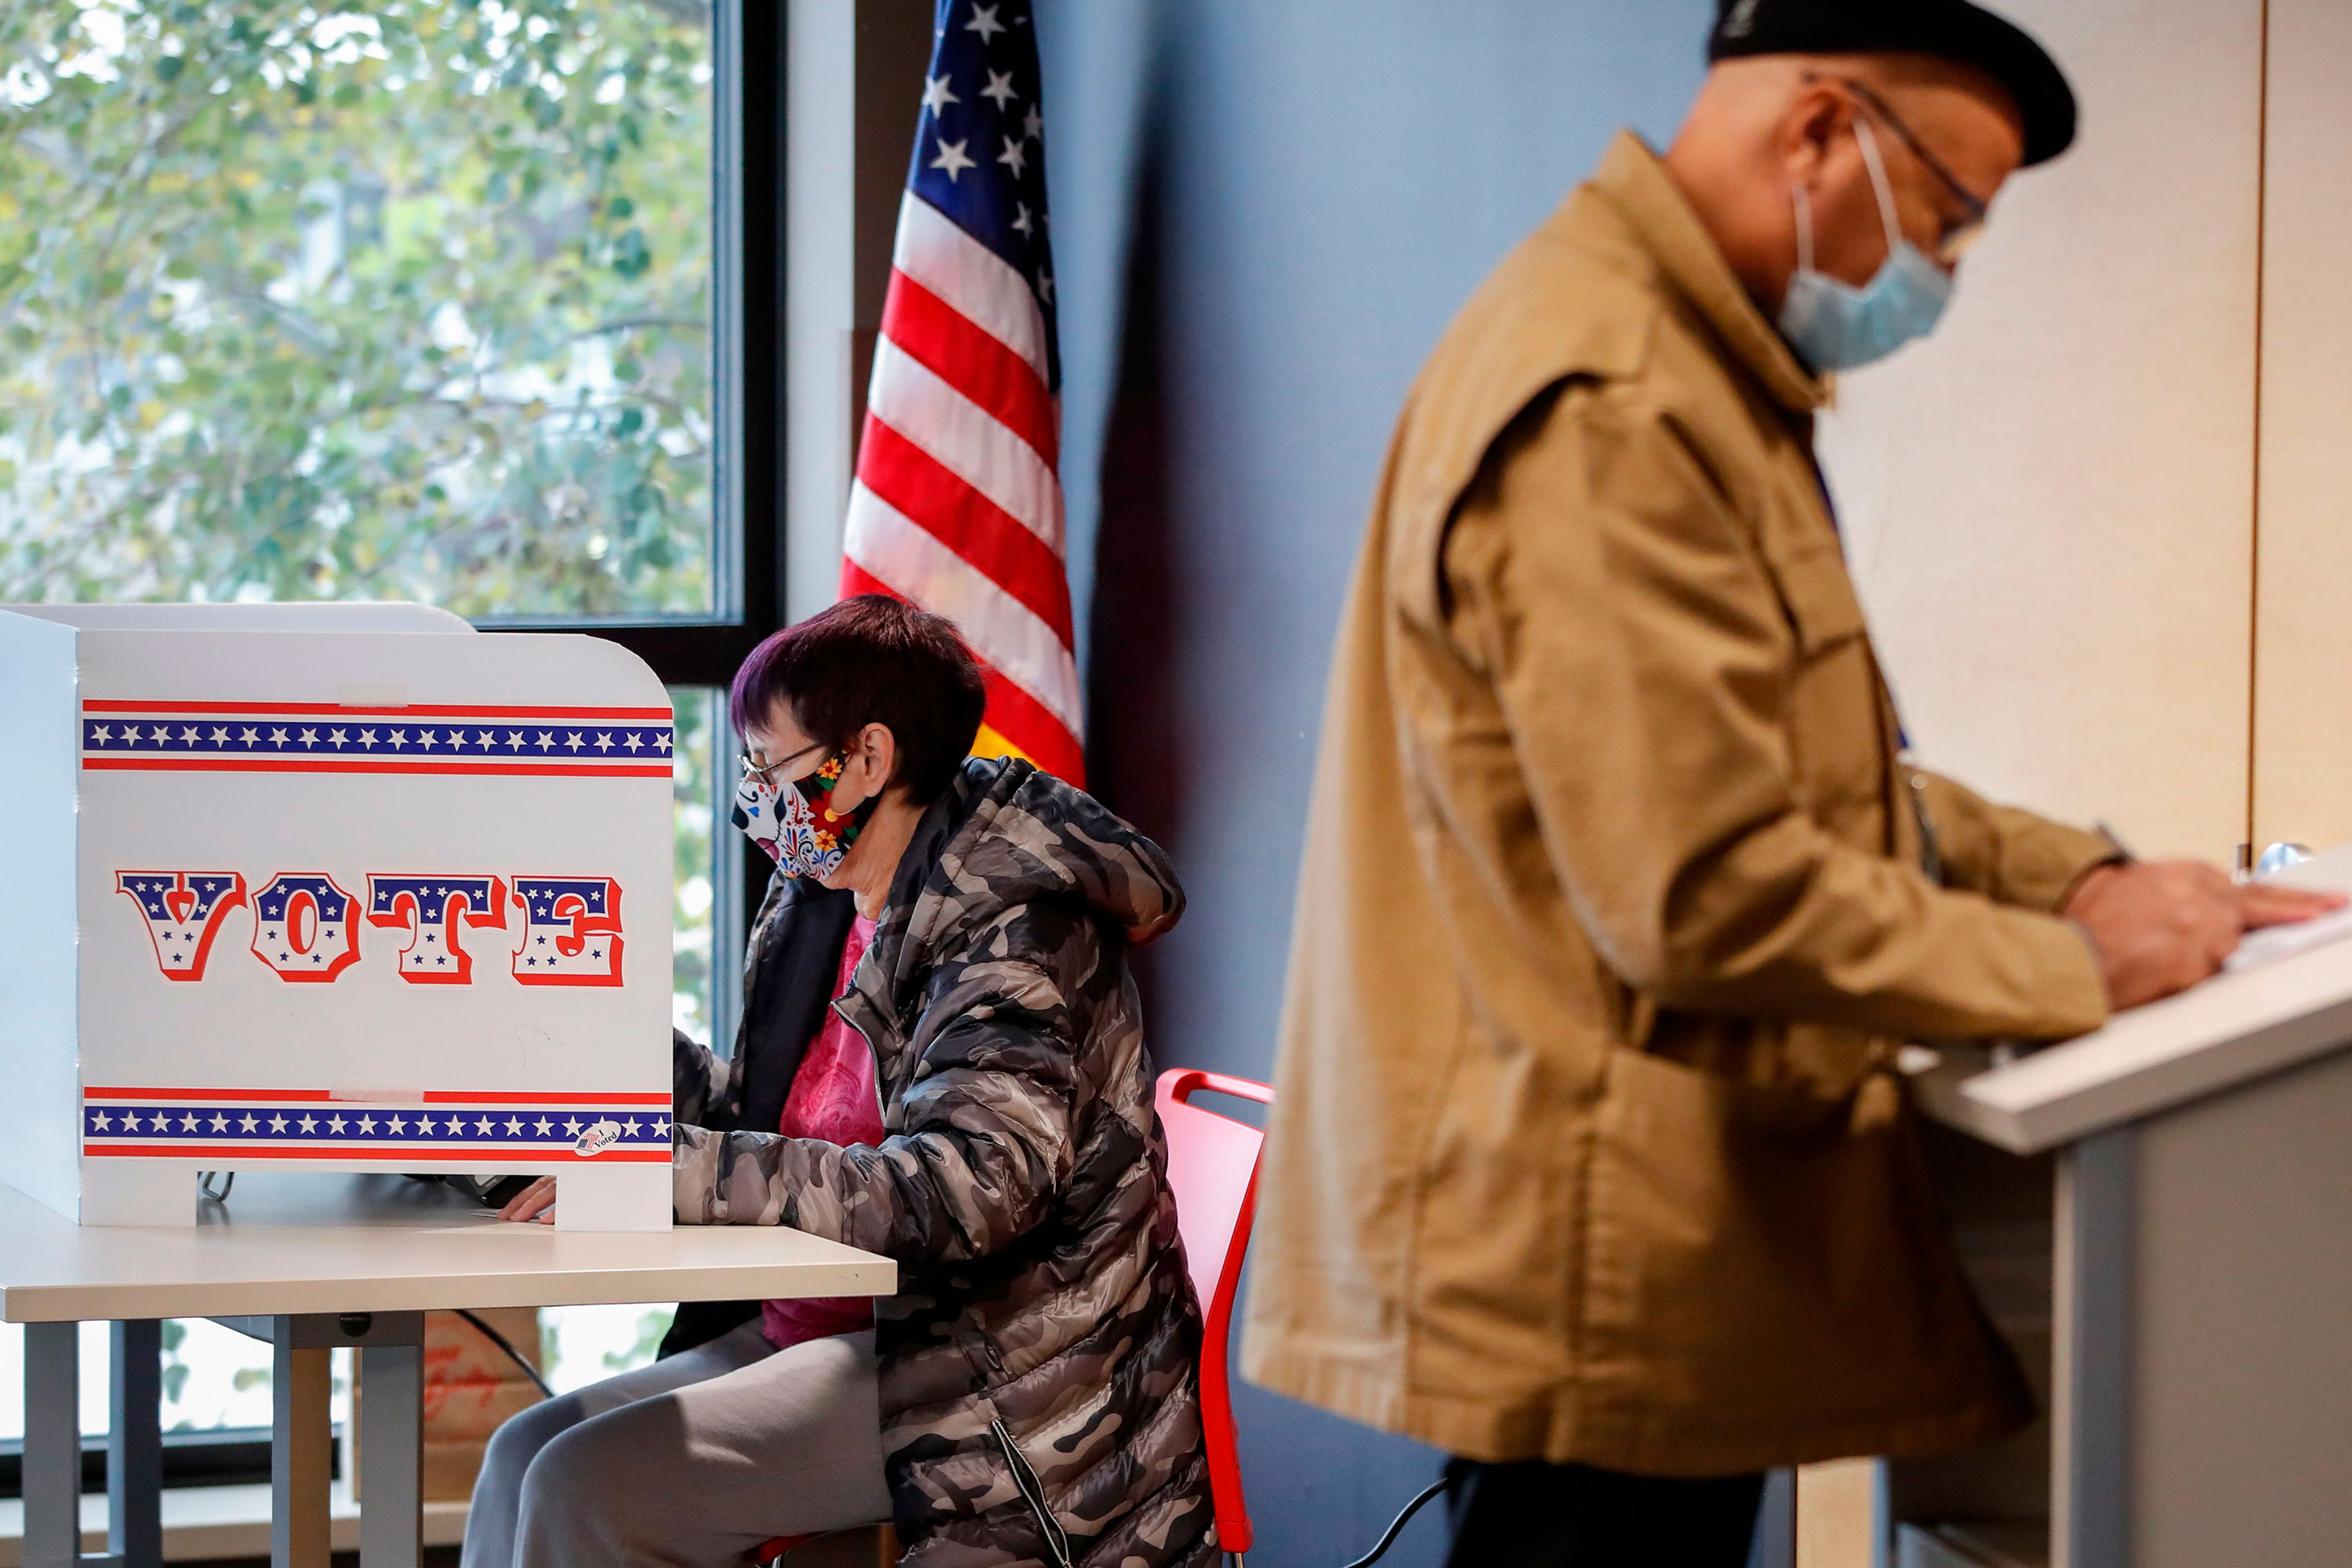 People cast their ballots in Milwaukee, Wisconsin, on October 20.